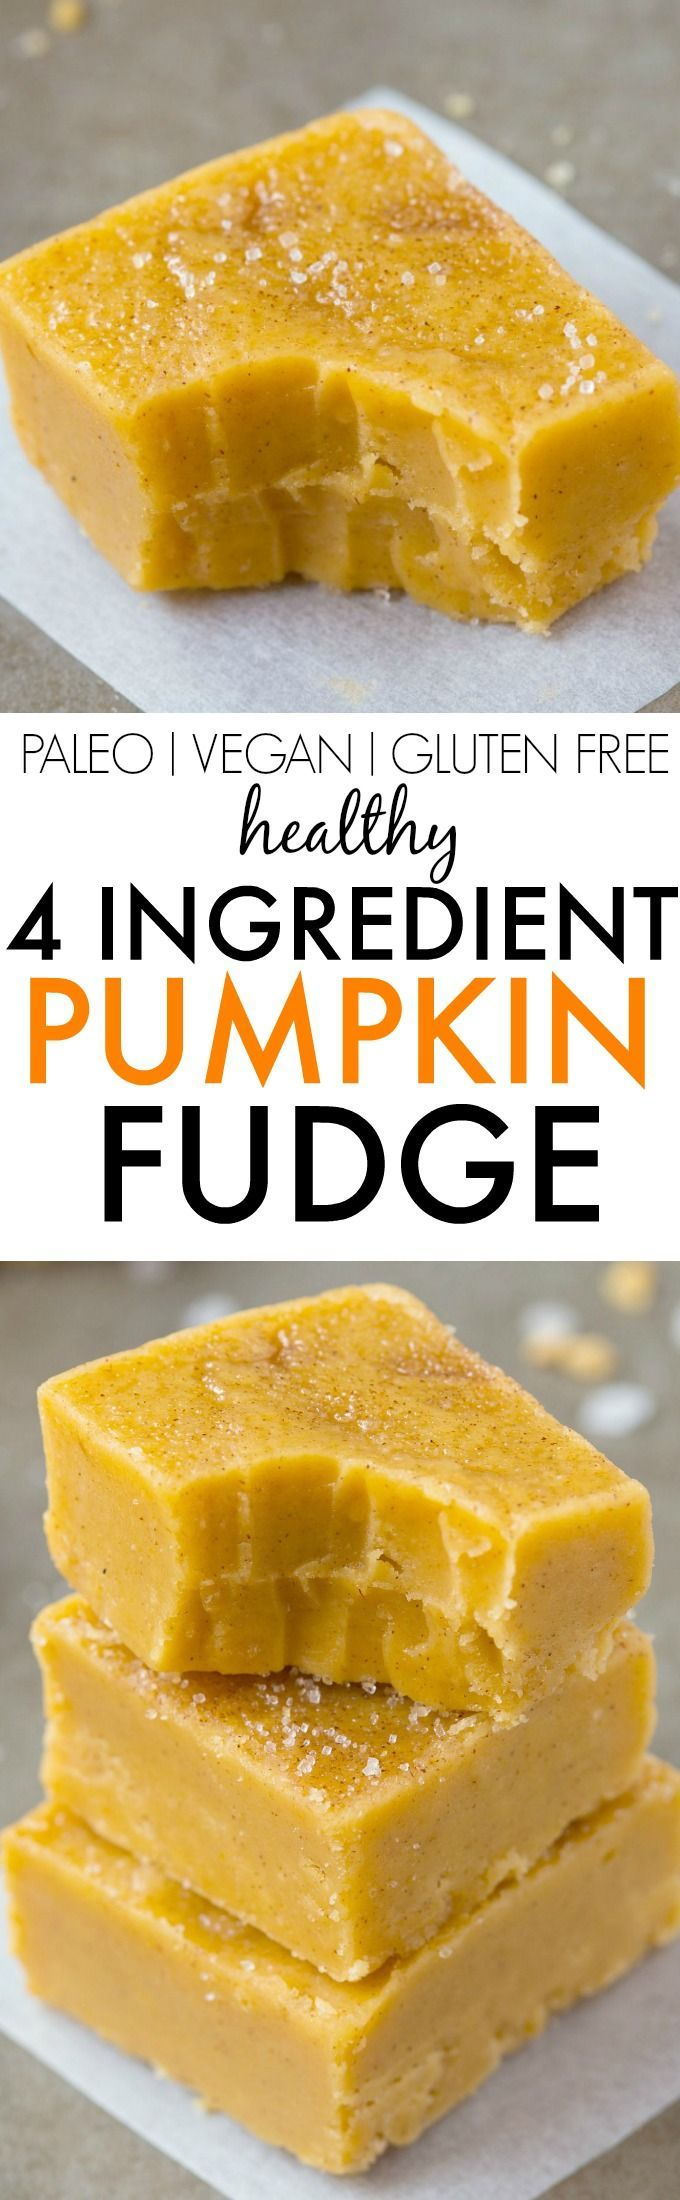 Healthy 4 Ingredient Pumpkin Fudge- Smooth, creamy and ready in minutes, this secretly healthy fudge has a hint of pumpkin and NO condensed milk, butter, refined sugar free and dairy free! {vegan, gluten free, paleo recipe}- http://thebigmansworld.com